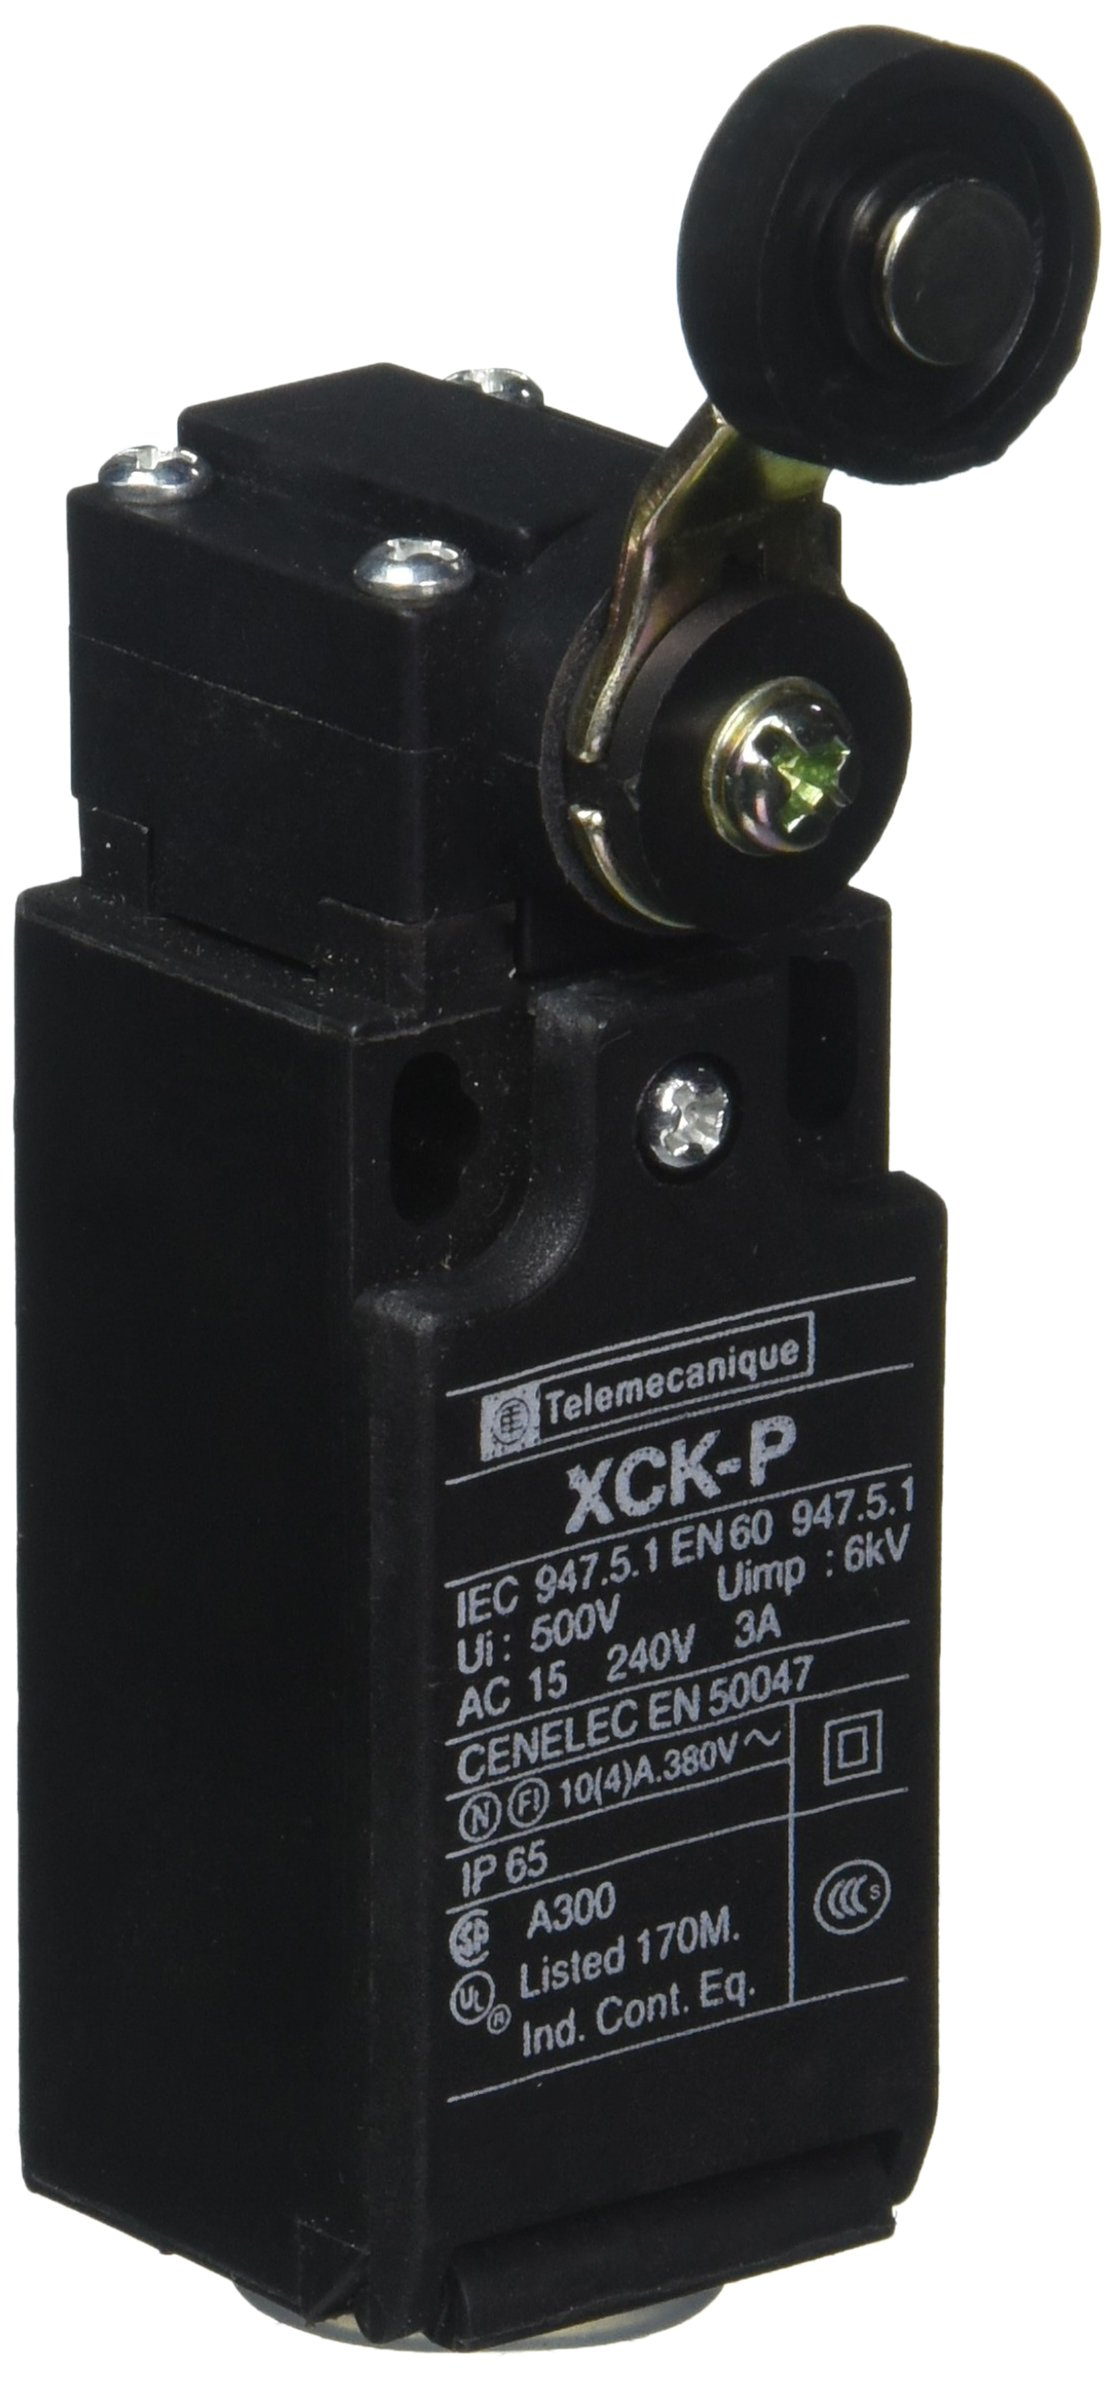 Uxcell SPDT 1NO 1NC AC 240V 3 Amp XCK-P Momentary Rotary Roller Plunger Limit Switch